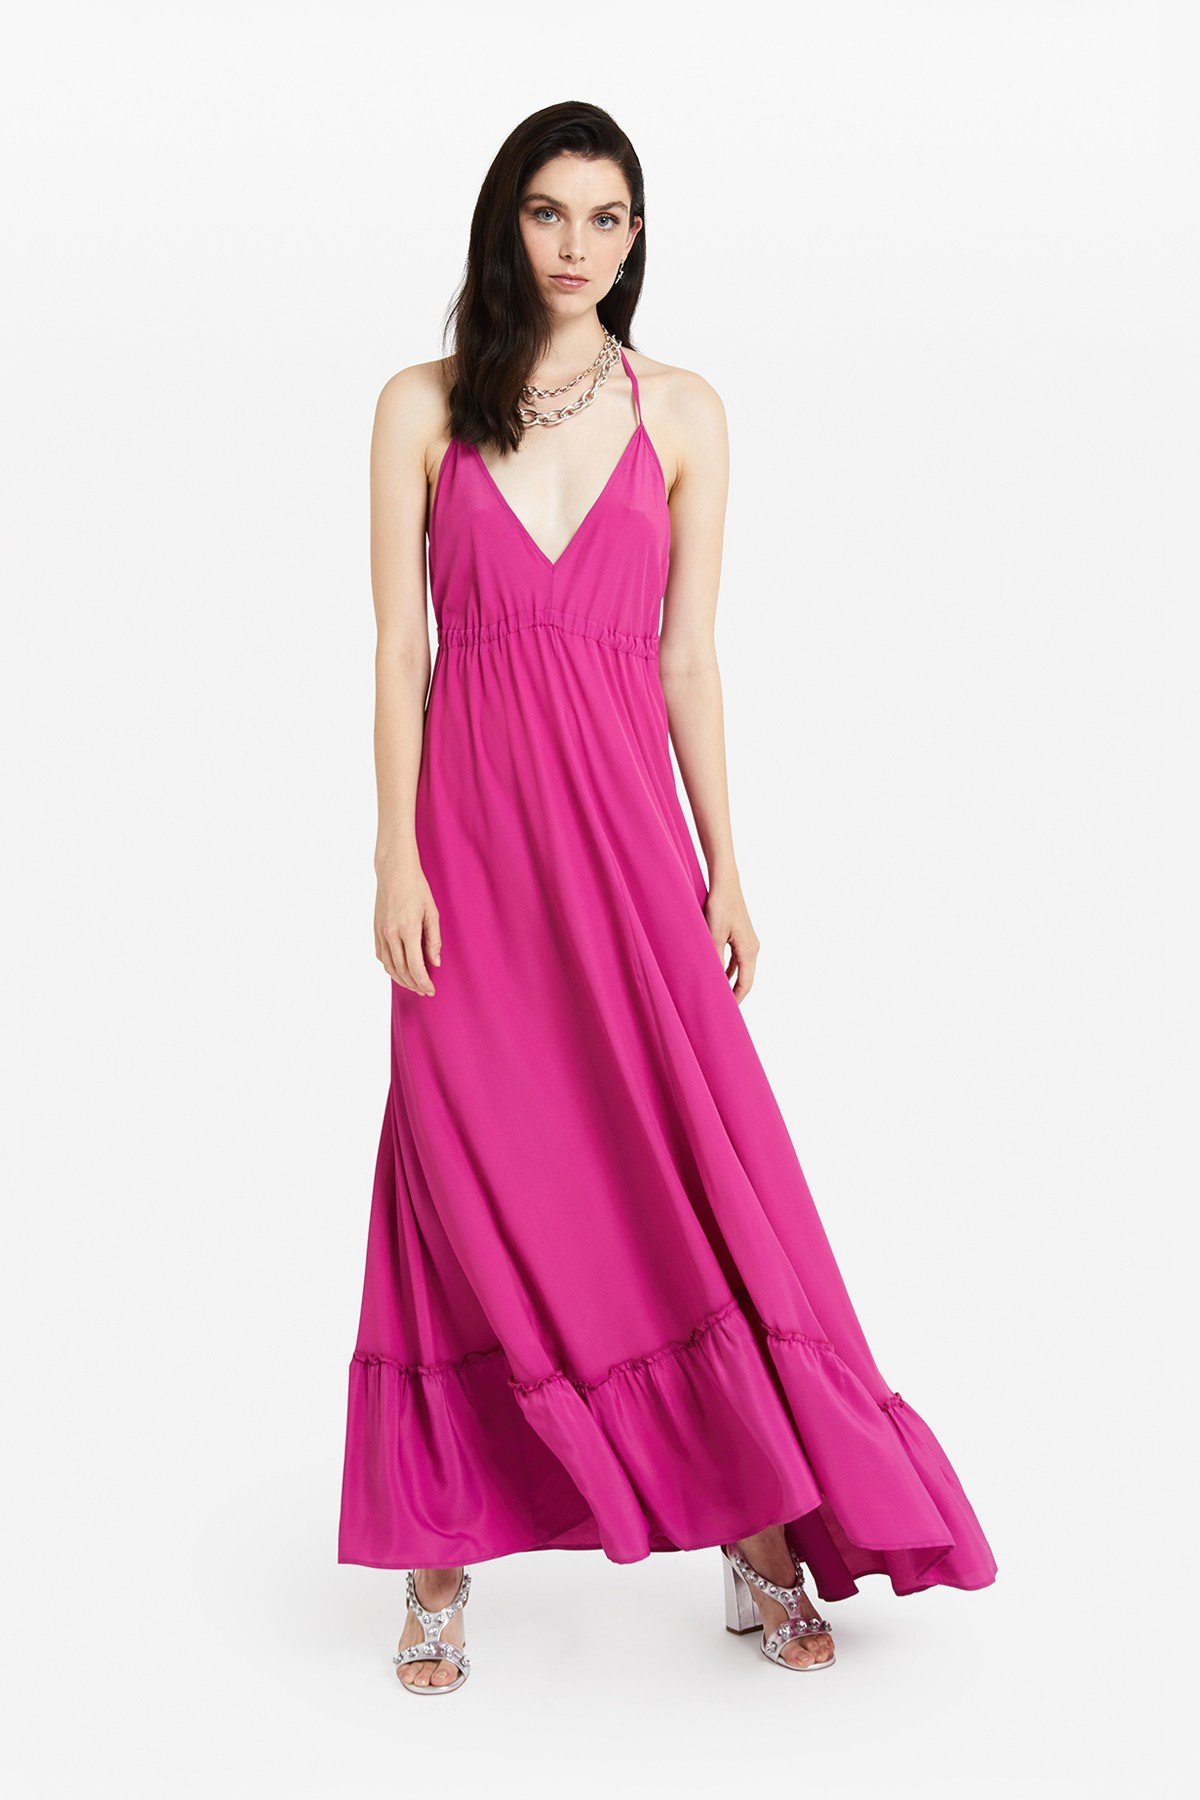 Long dress with ruffle at the bottom